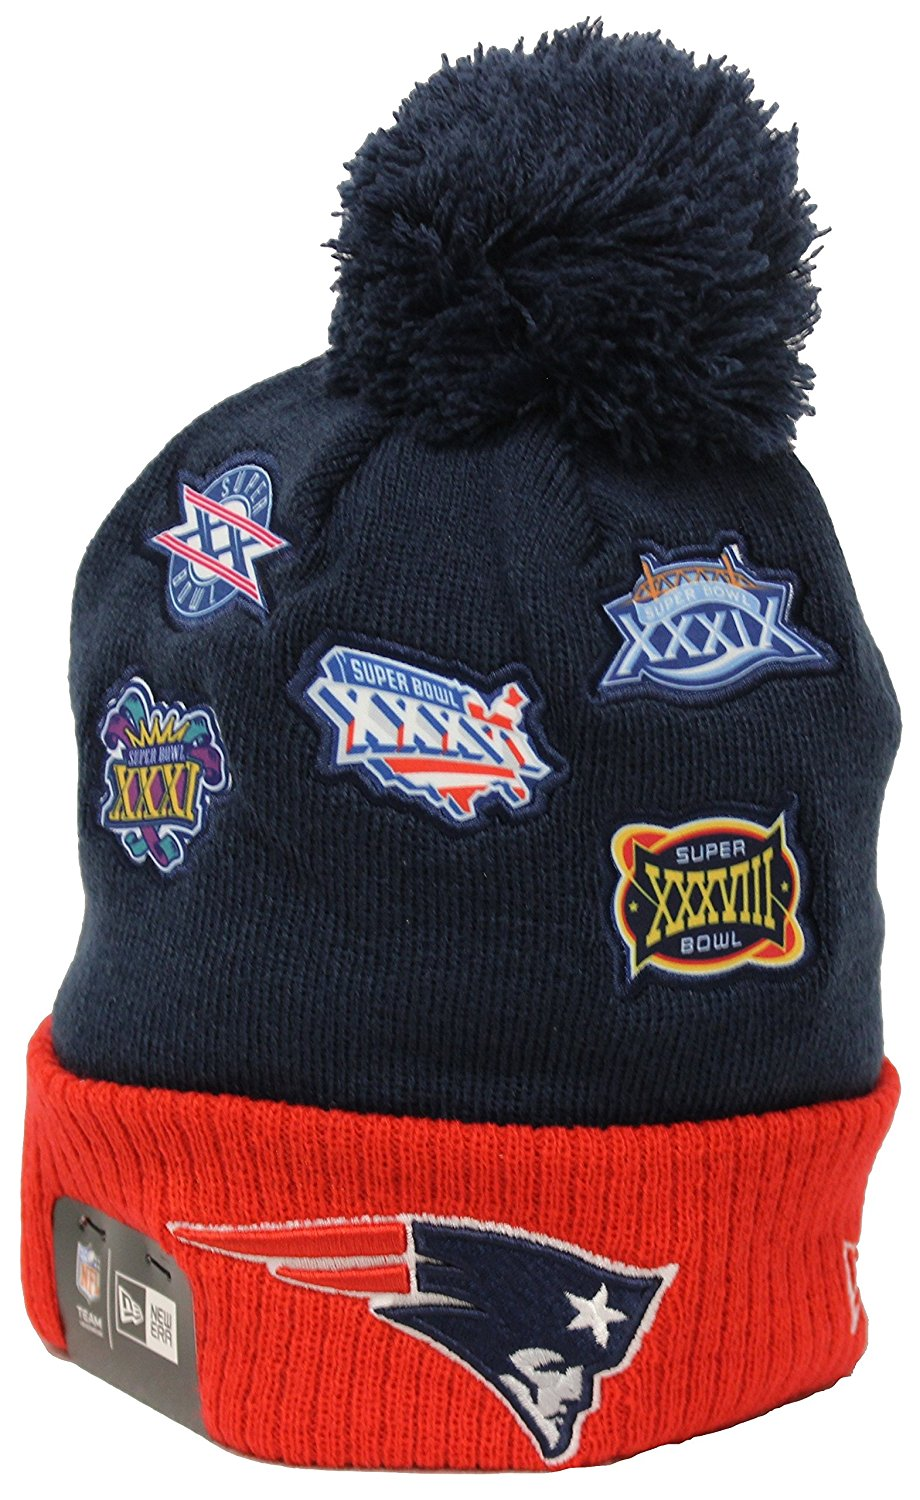 ab19010269204 Get Quotations · New Era Super Bowl Patch New England Patriots Navy Red Pom  Beanie